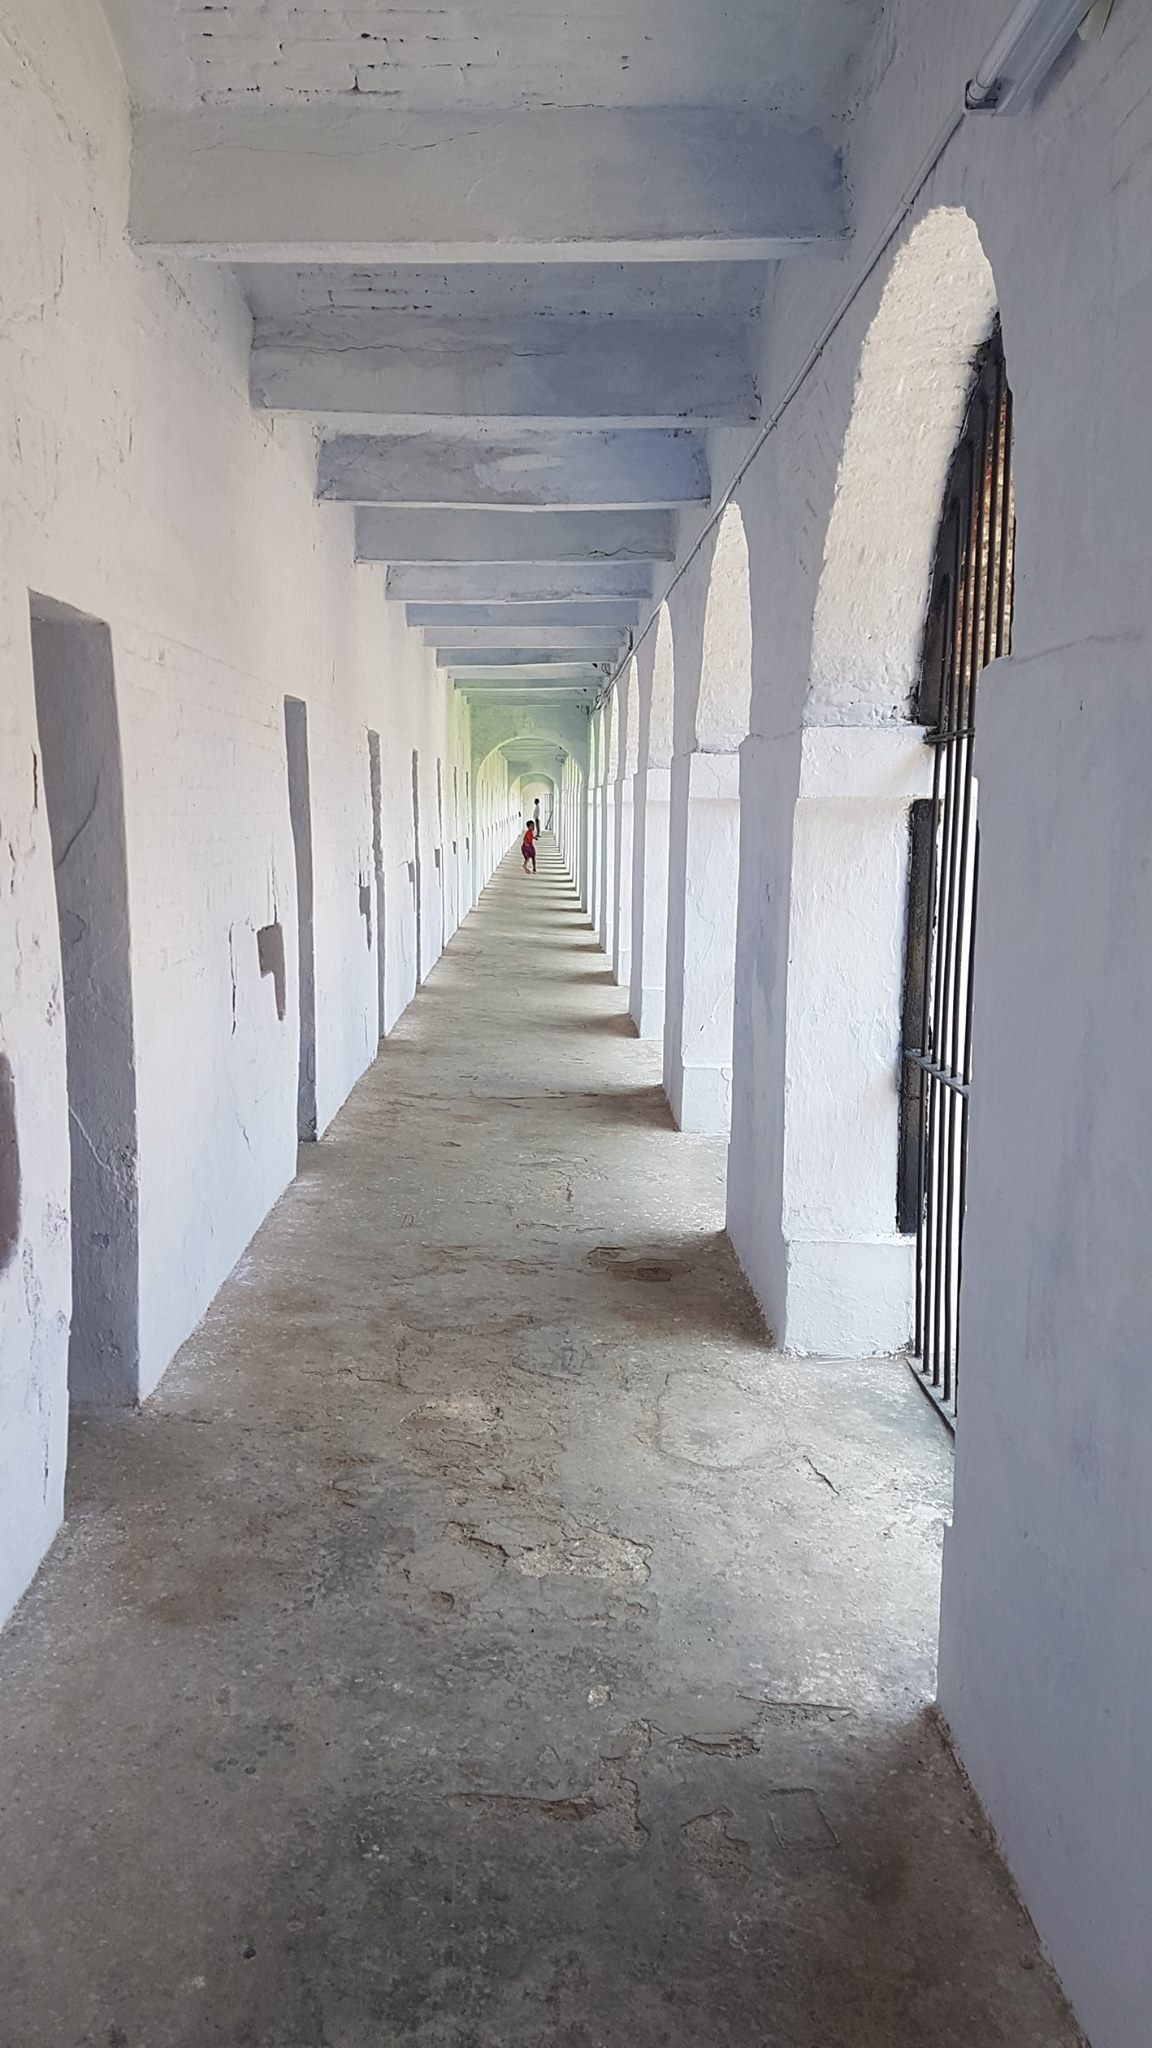 Nandu running around the Cellular Jail